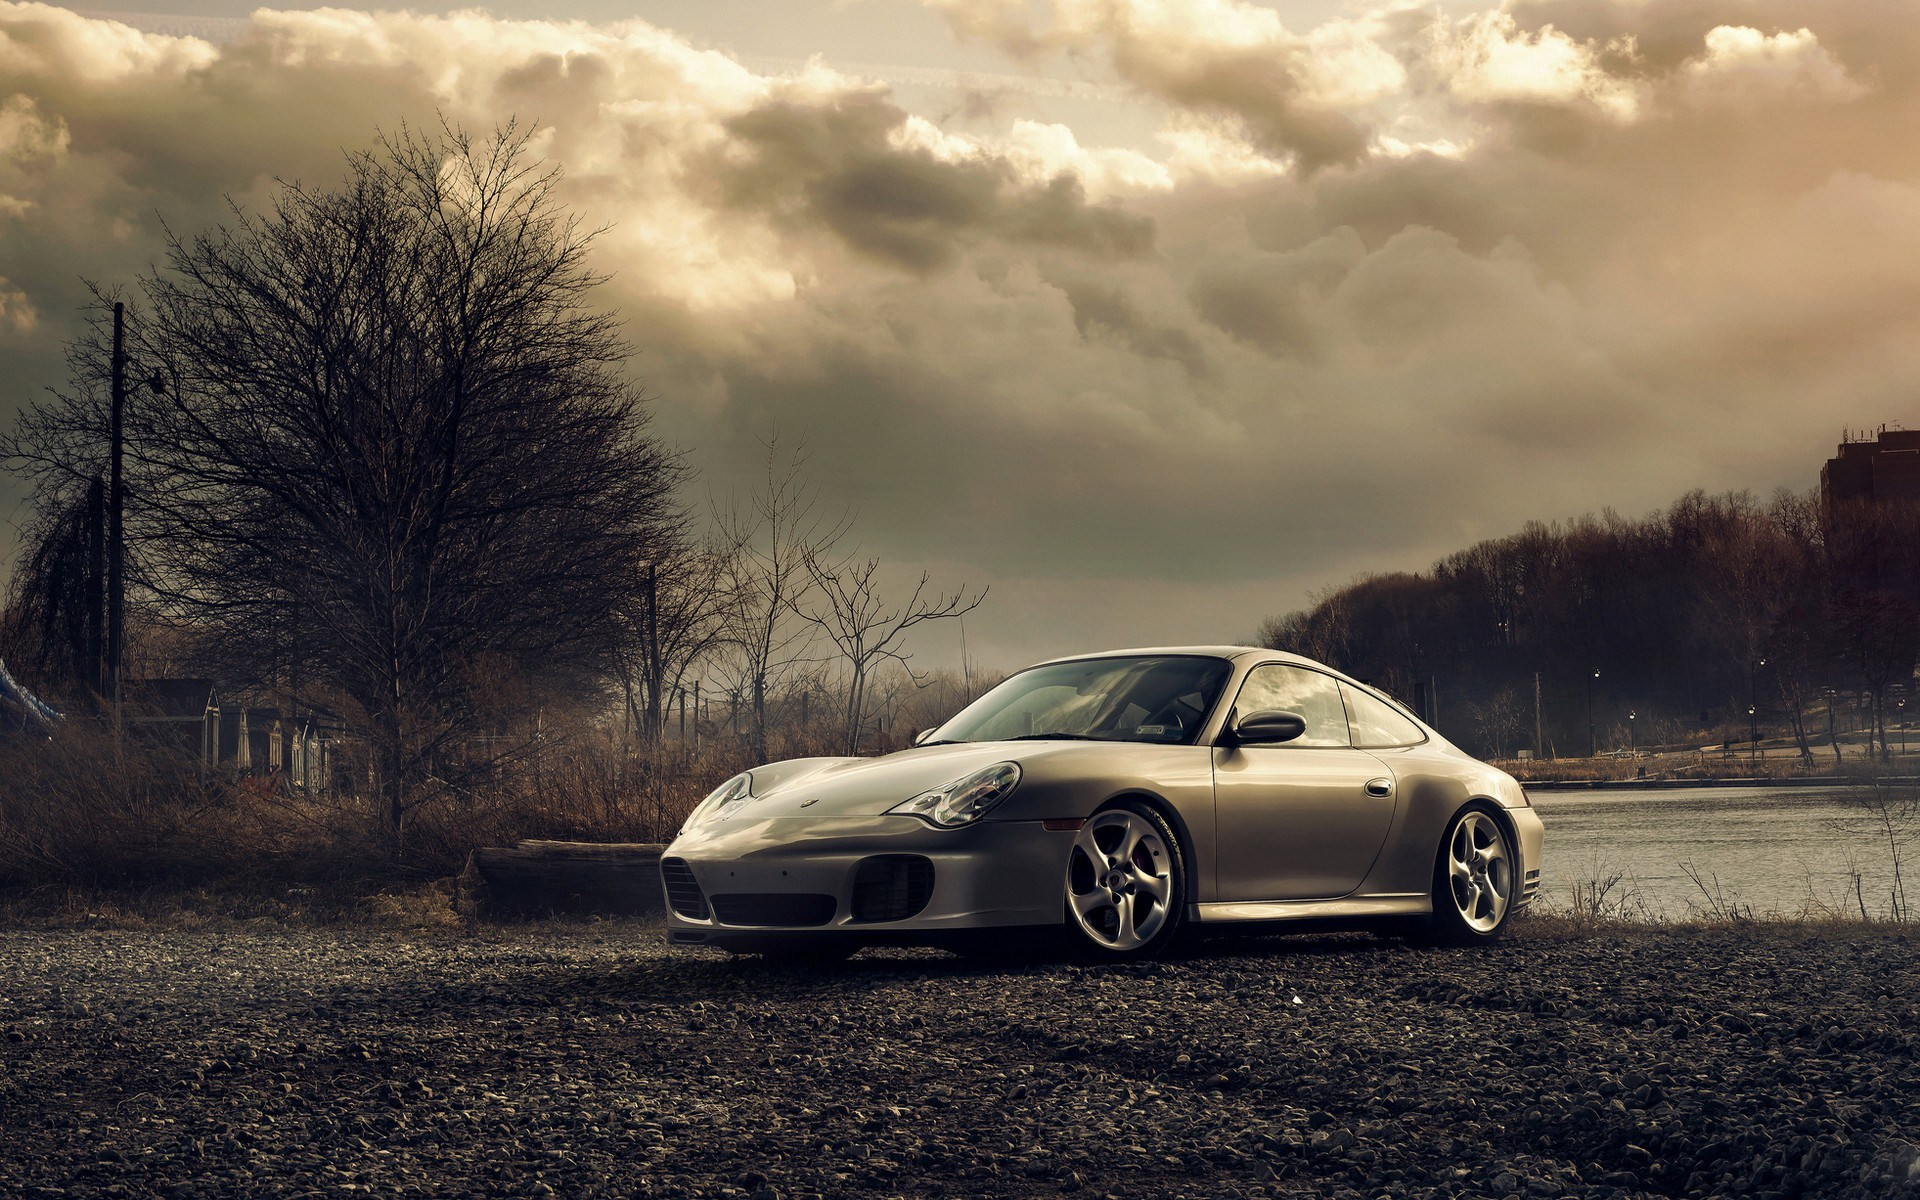 Porsche Wallpaper 591 Cool Widescreen